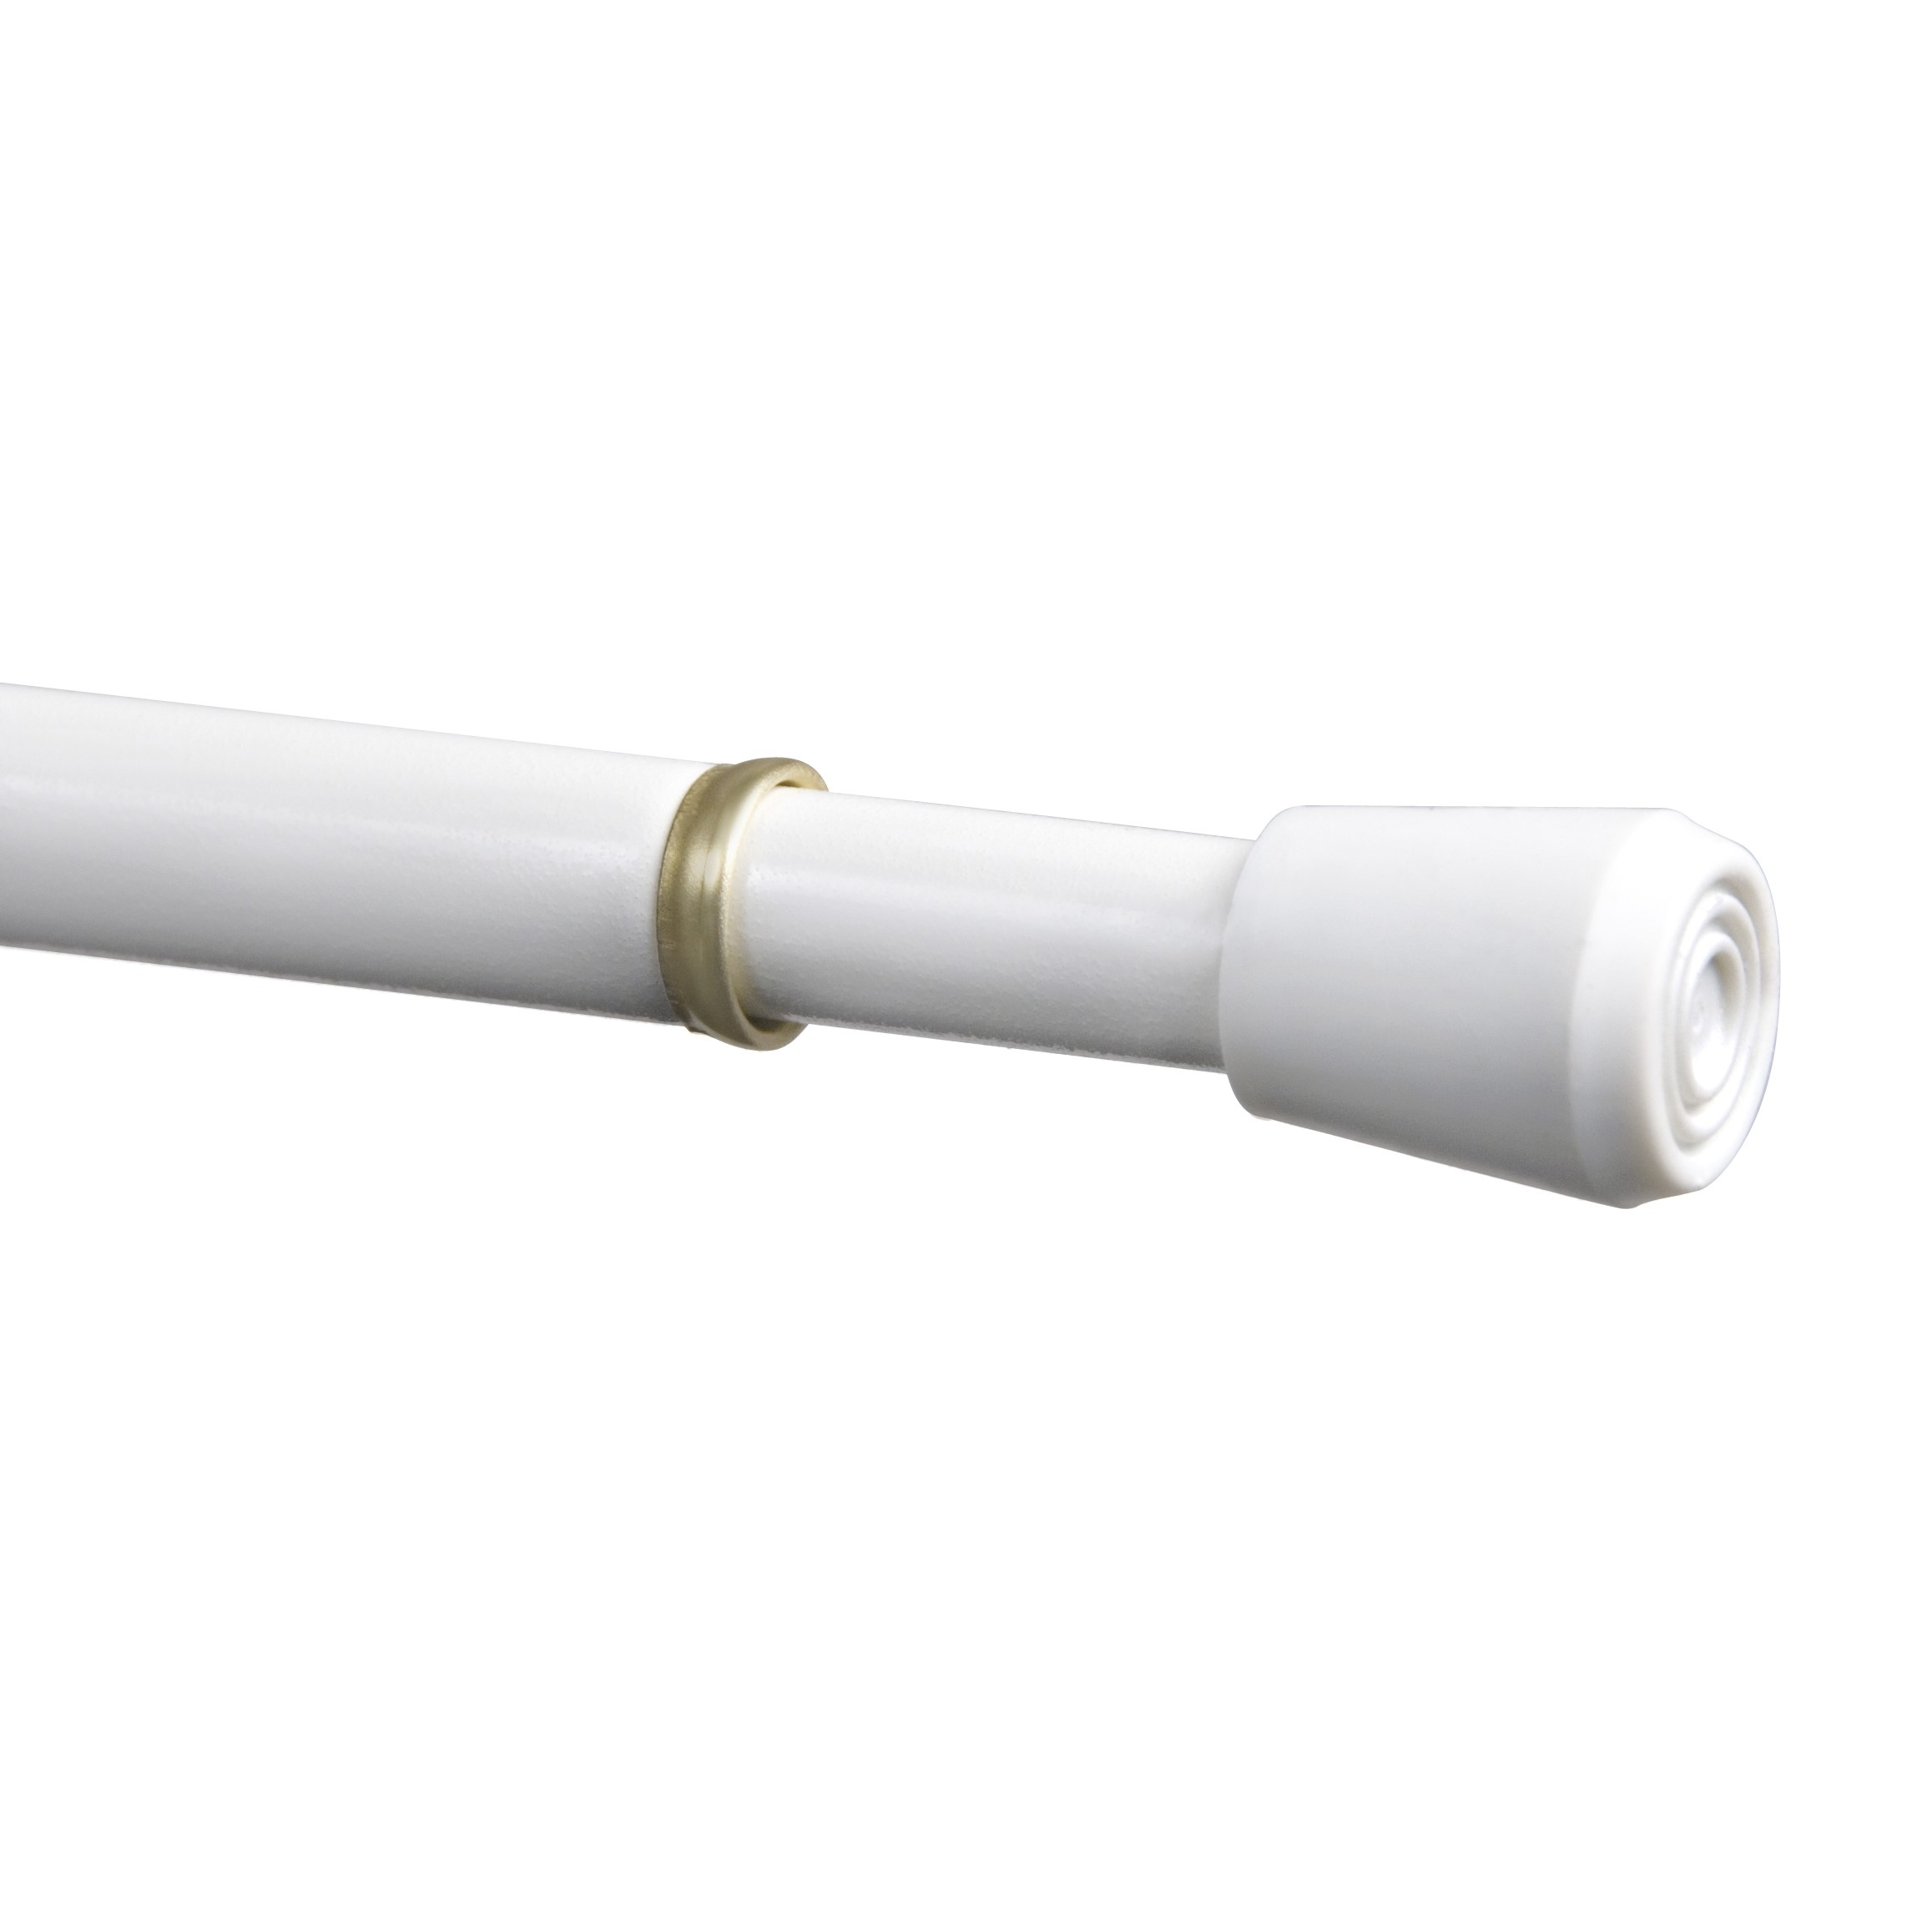 84 inch to 120 inch adjustable tension curtain rod